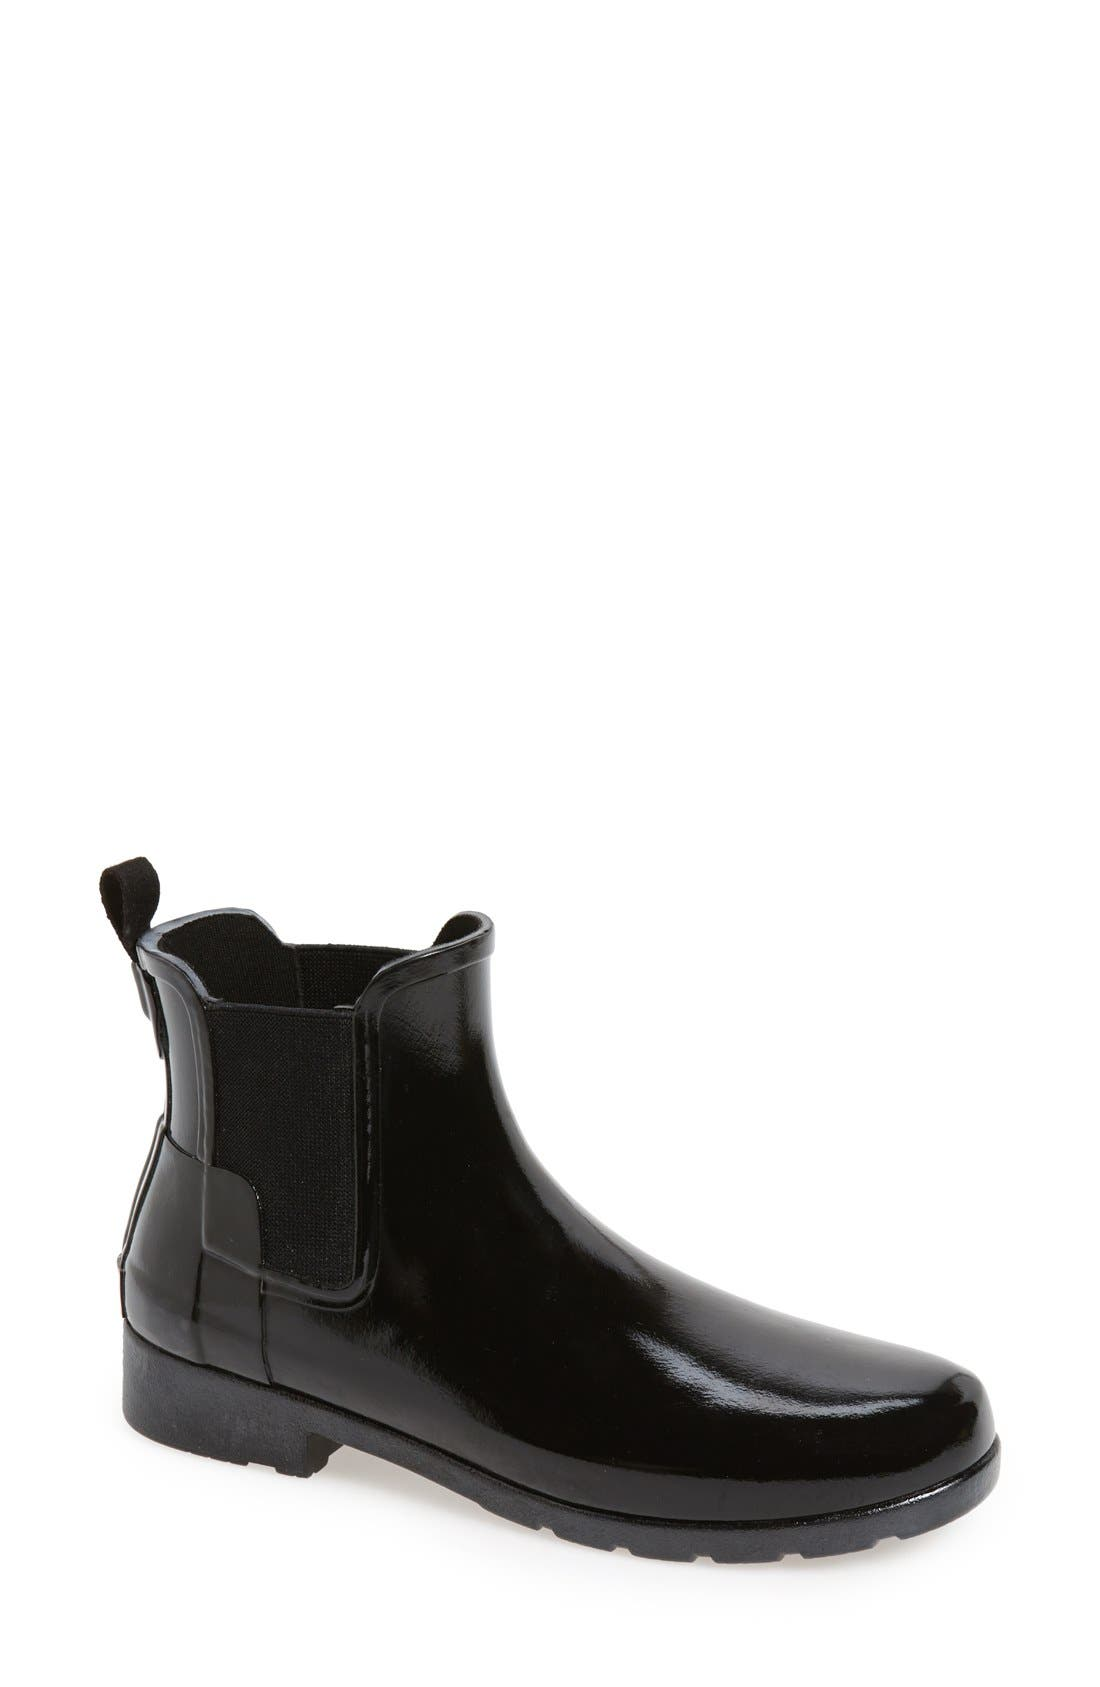 Hunter 'Original Refined' Chelsea Rain Boot Women